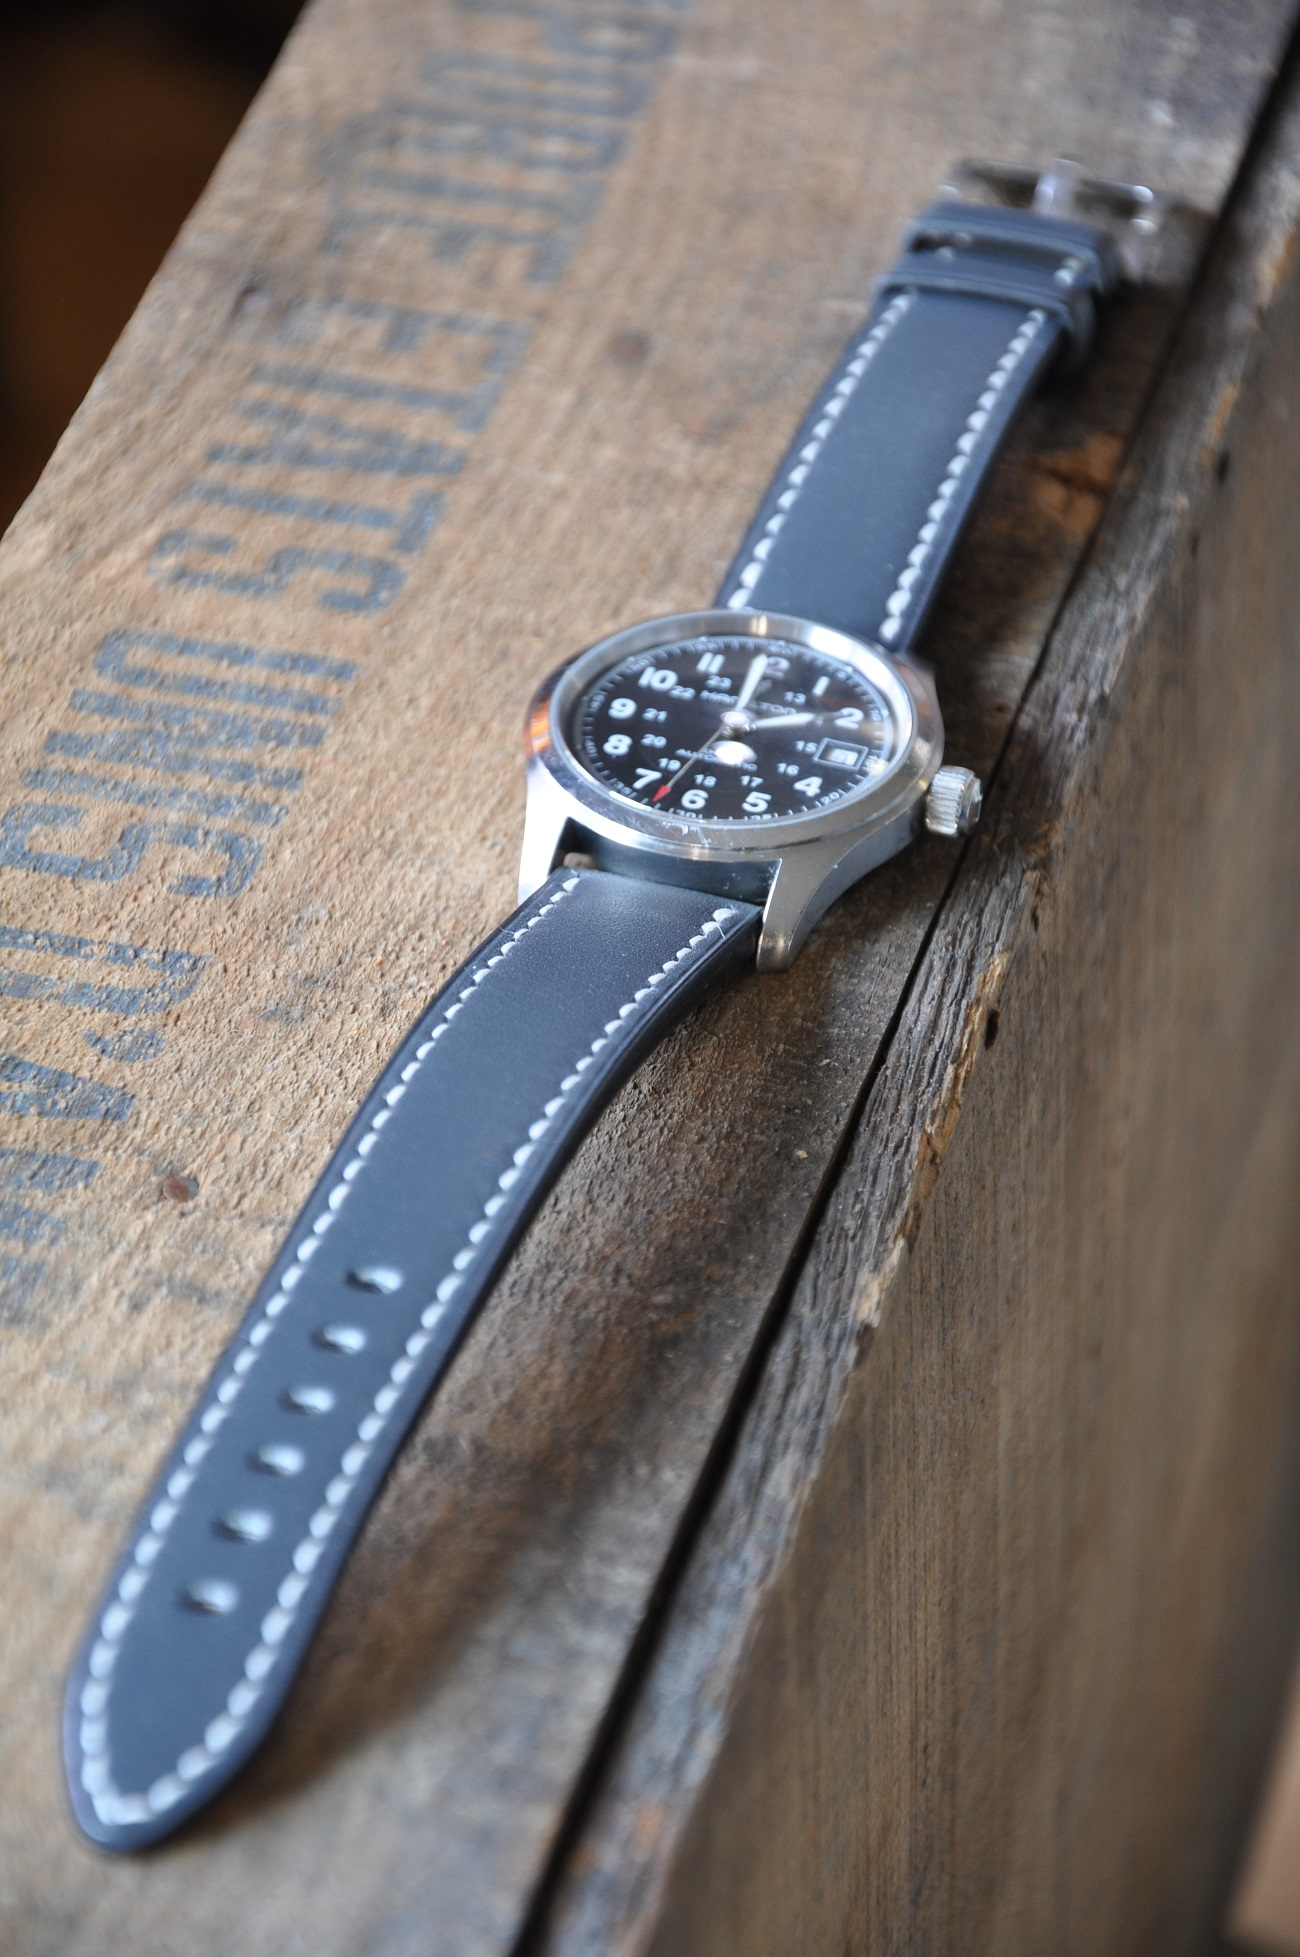 Special order for this watch strap in calfskin, entirely hand sewn by luxury leather goods makers in France.